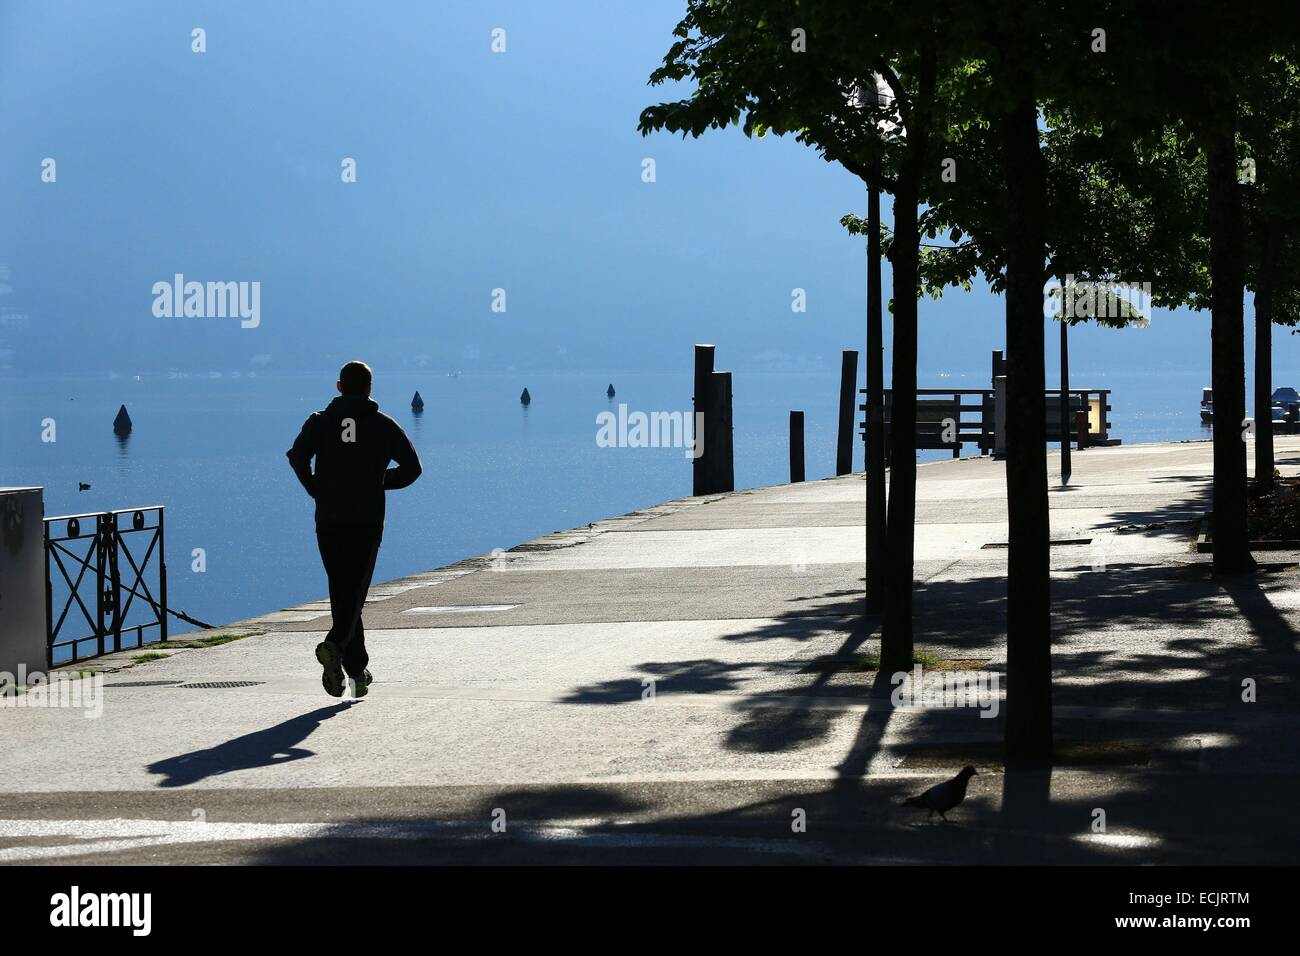 France, Haute Savoie, Annecy, Bayreuth dock on the shores of Lake Annecy - Stock Image